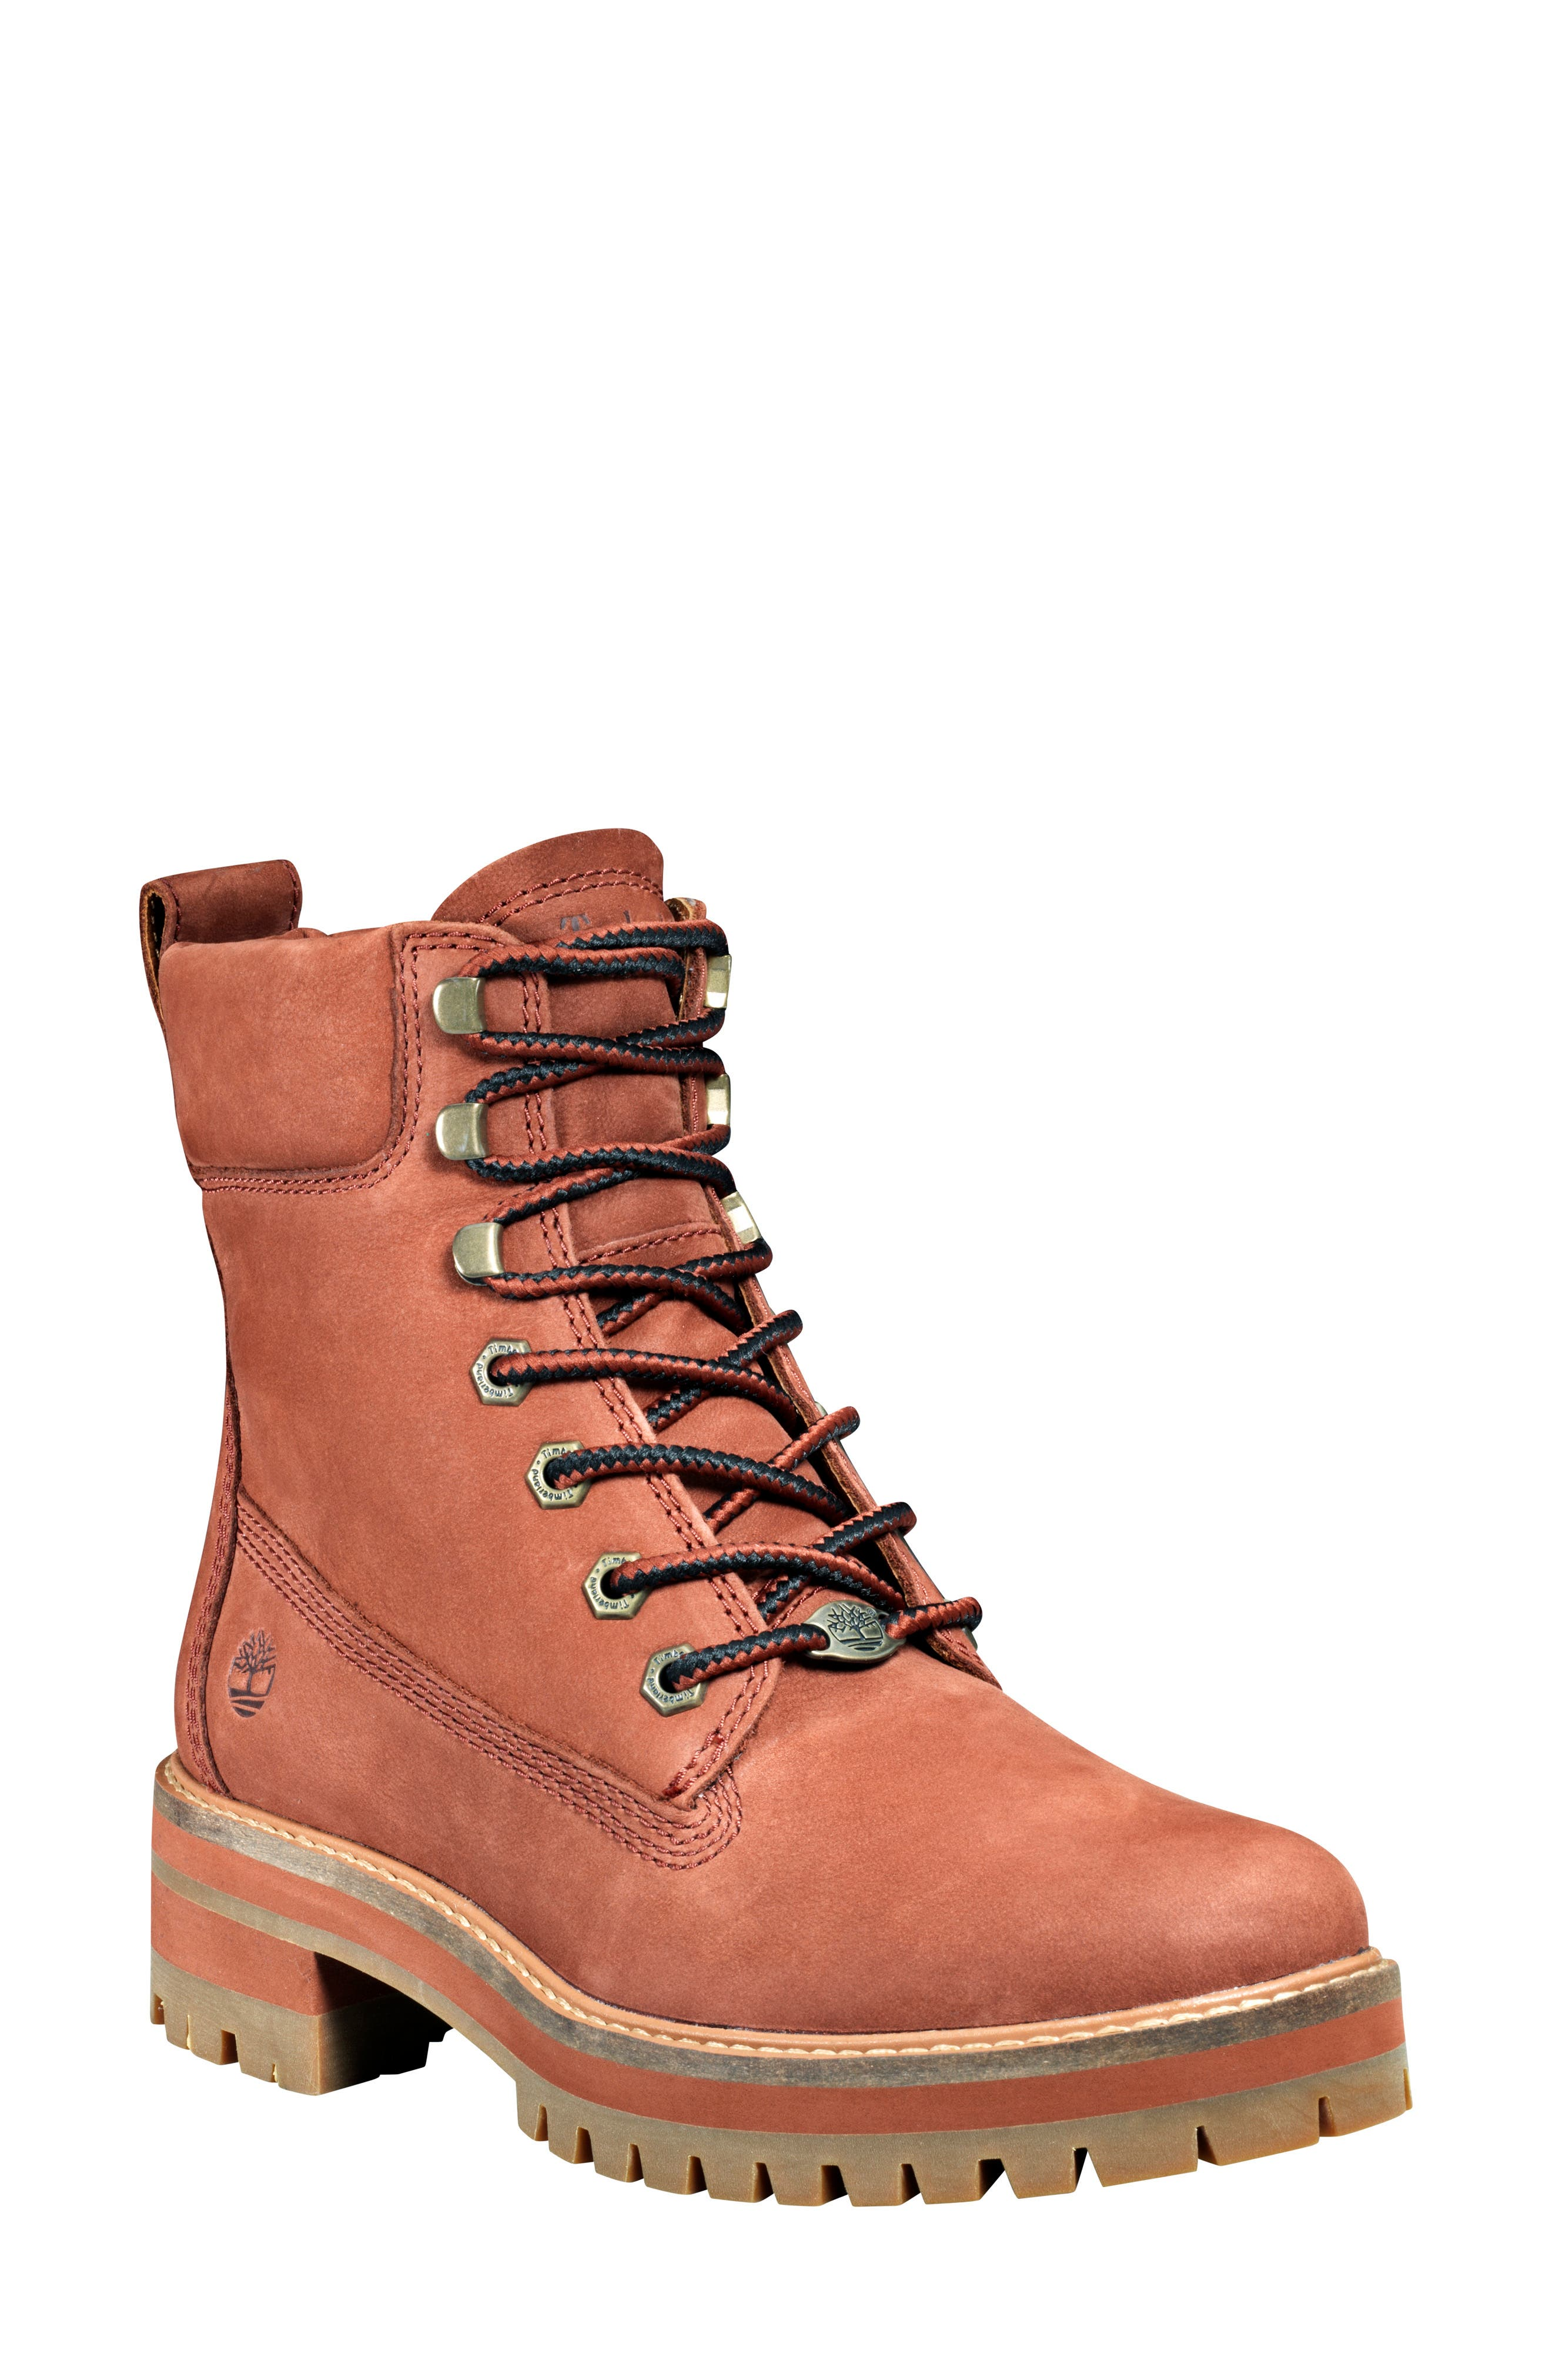 Women's Hiking Boots | Nordstrom